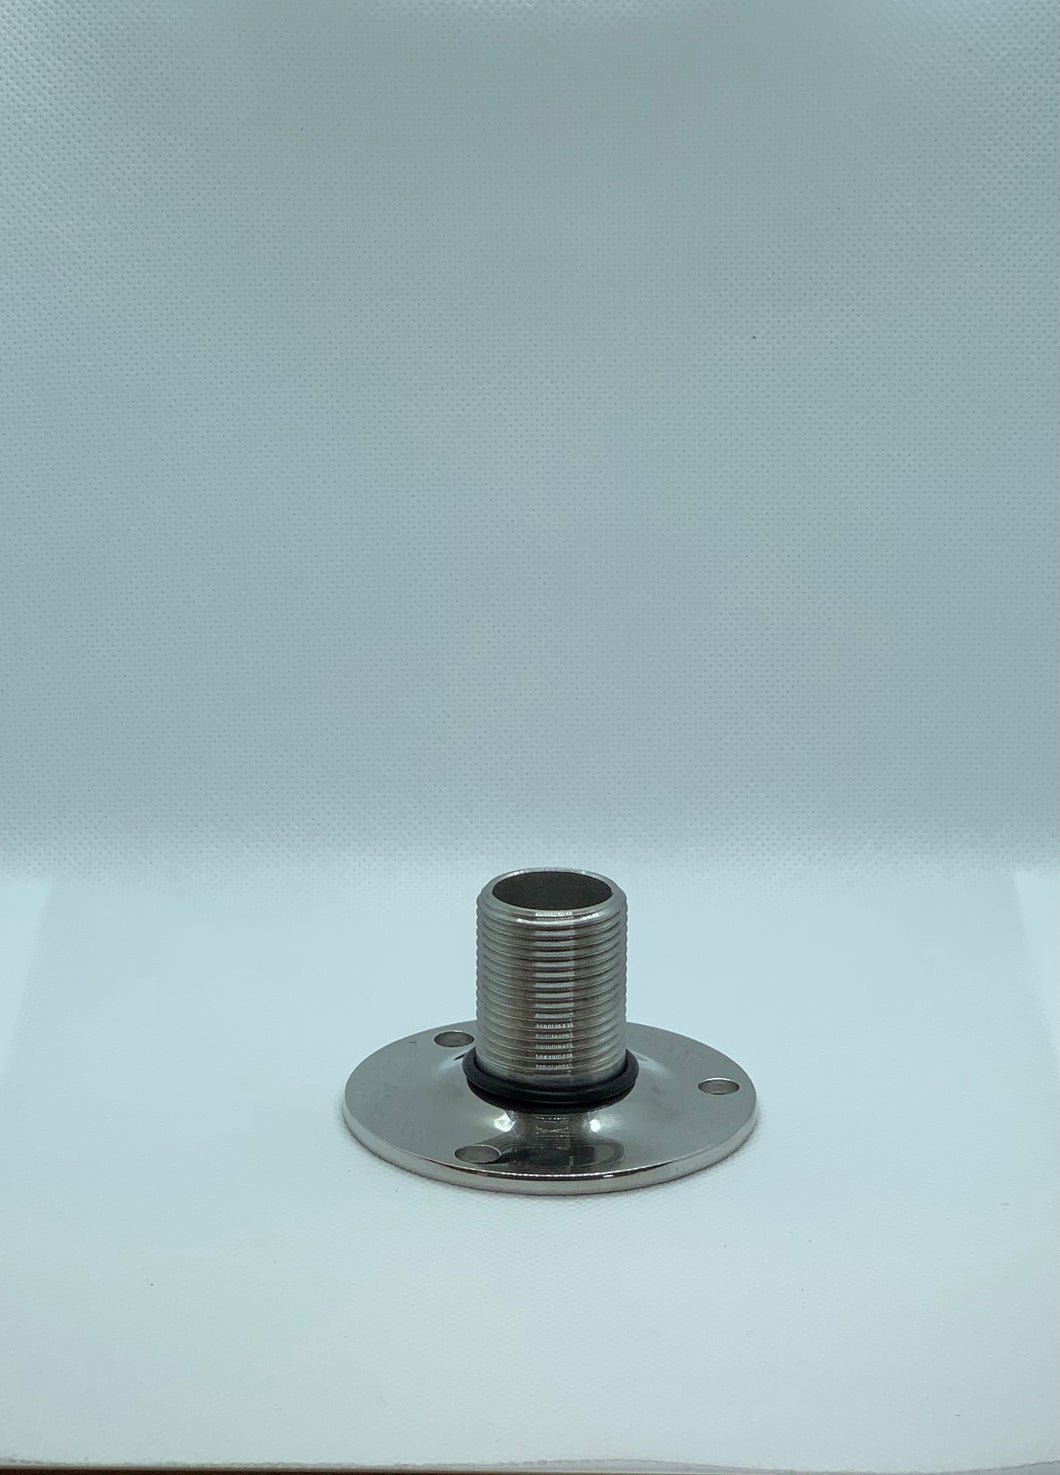 Shakespeare Stainless Steel Flange Mount w/ Seal